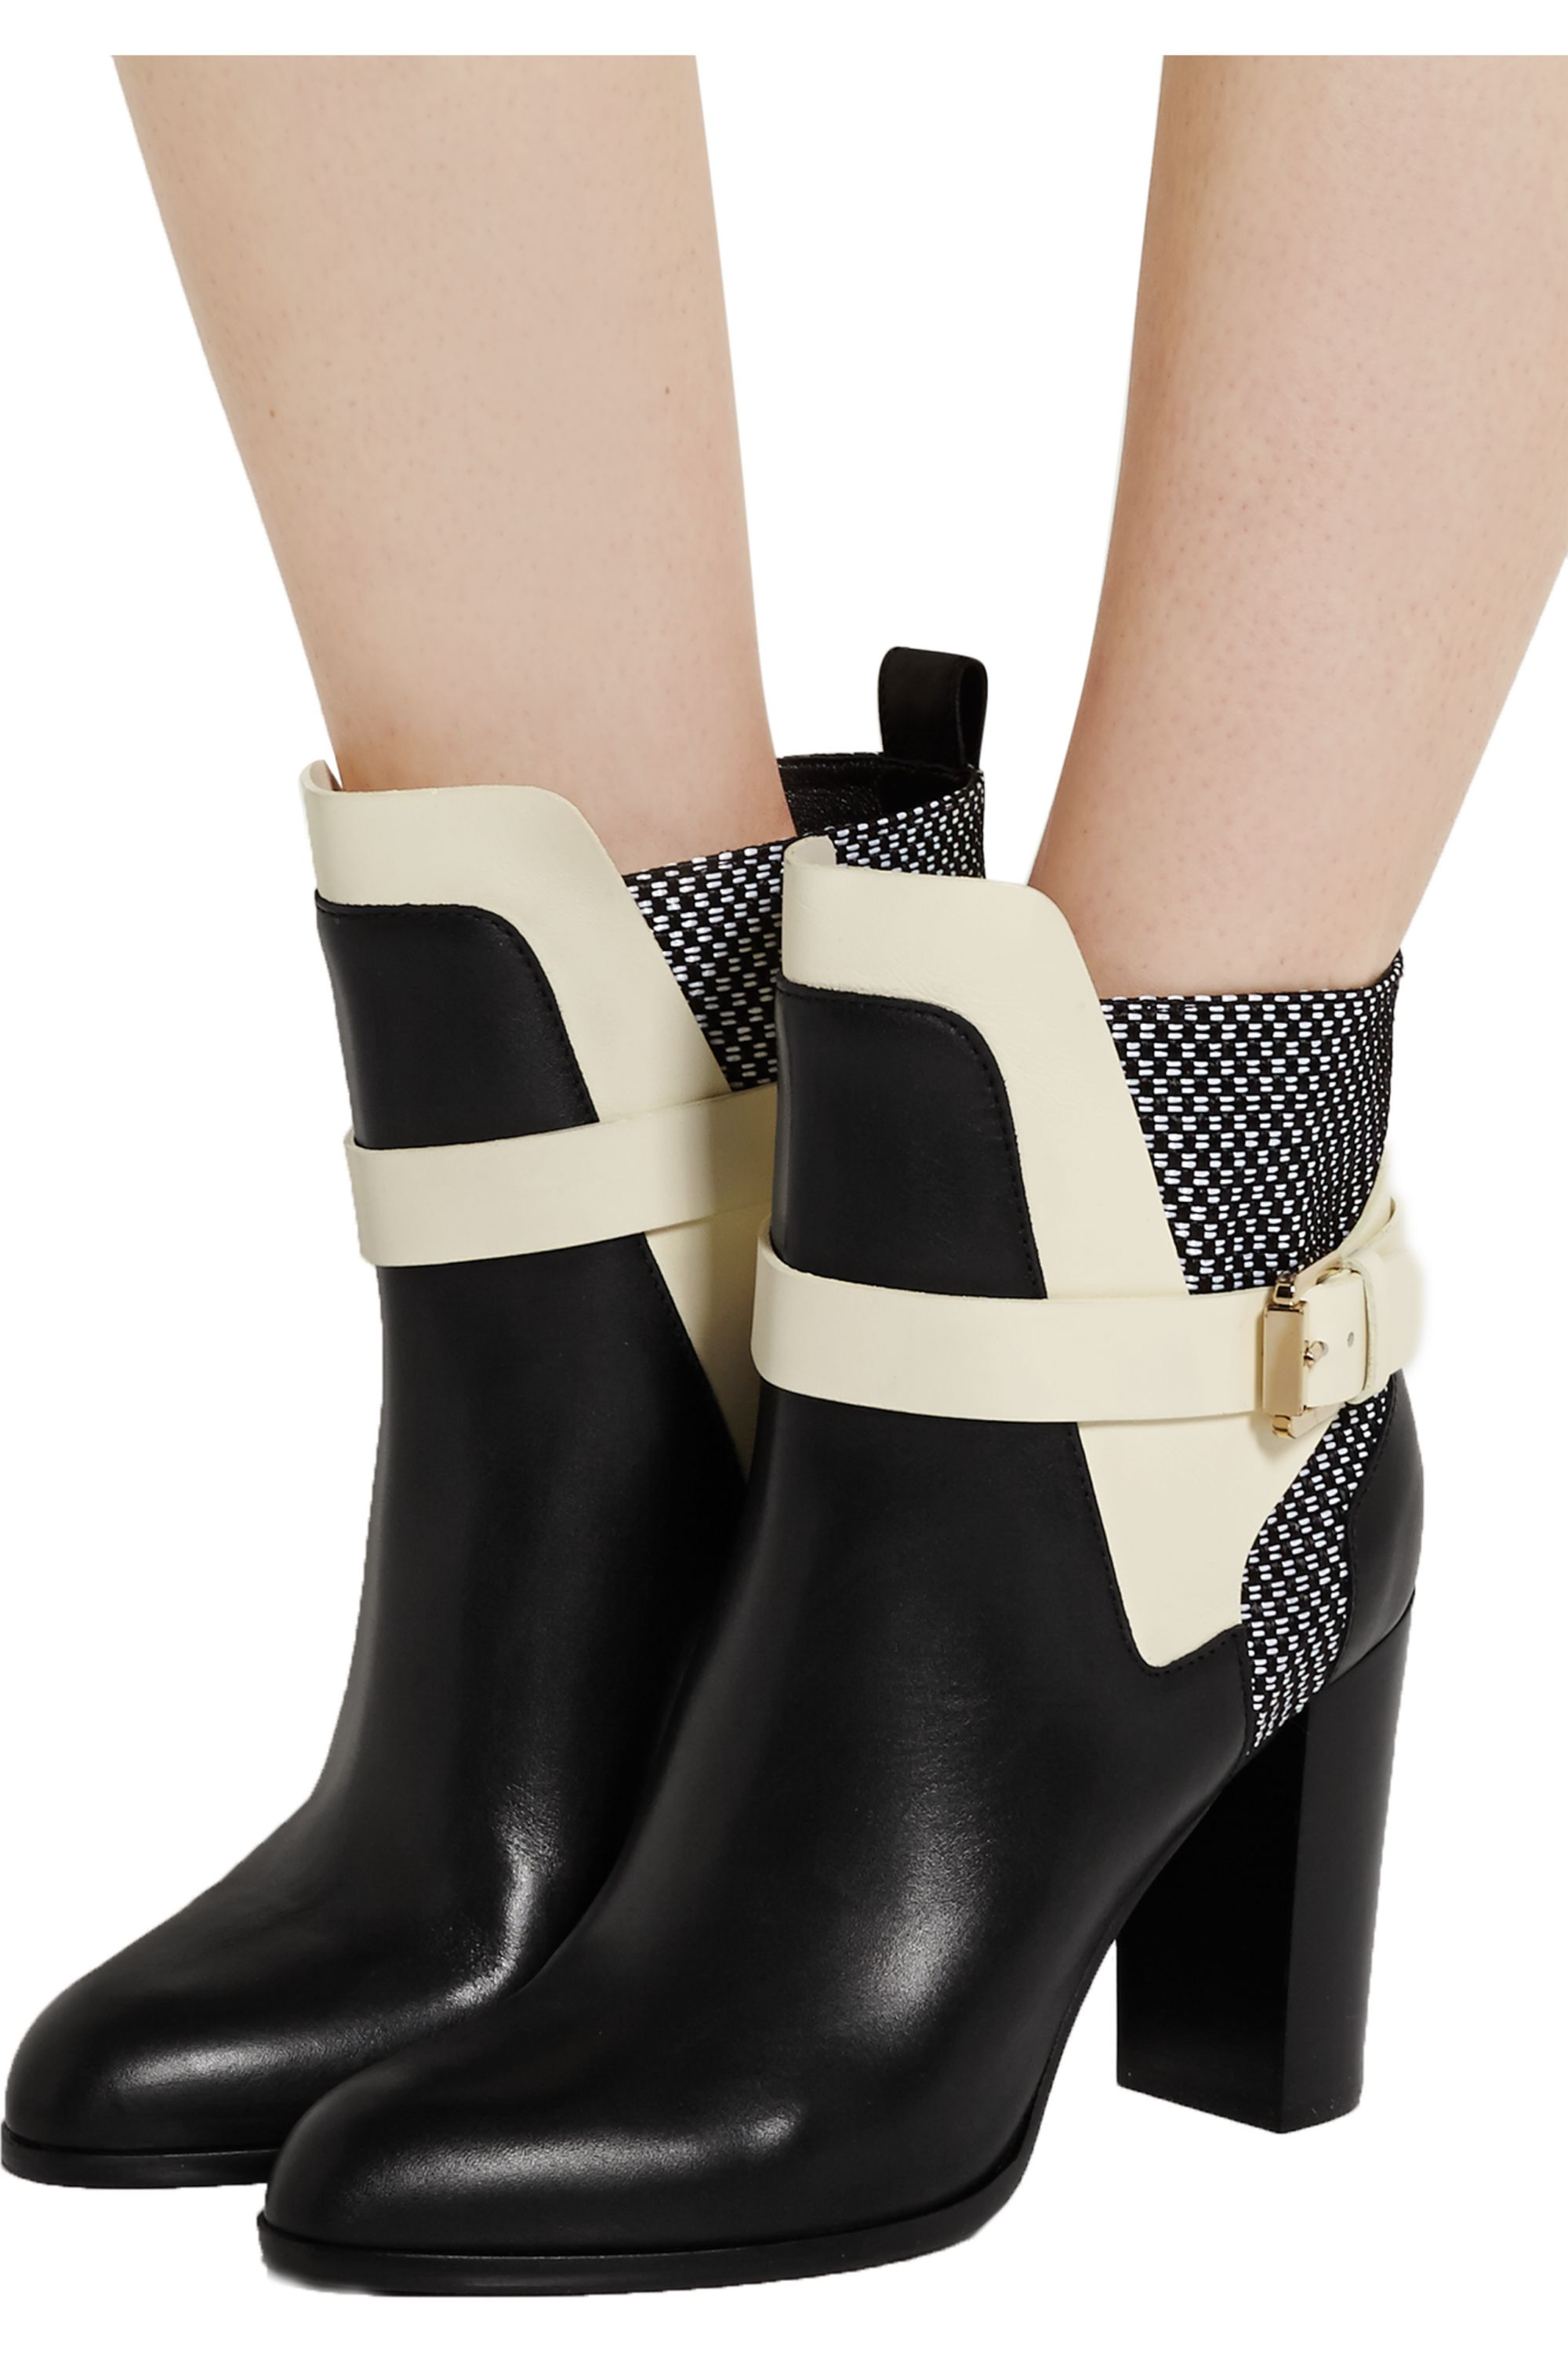 Sergio Rossi Woven-paneled leather boots